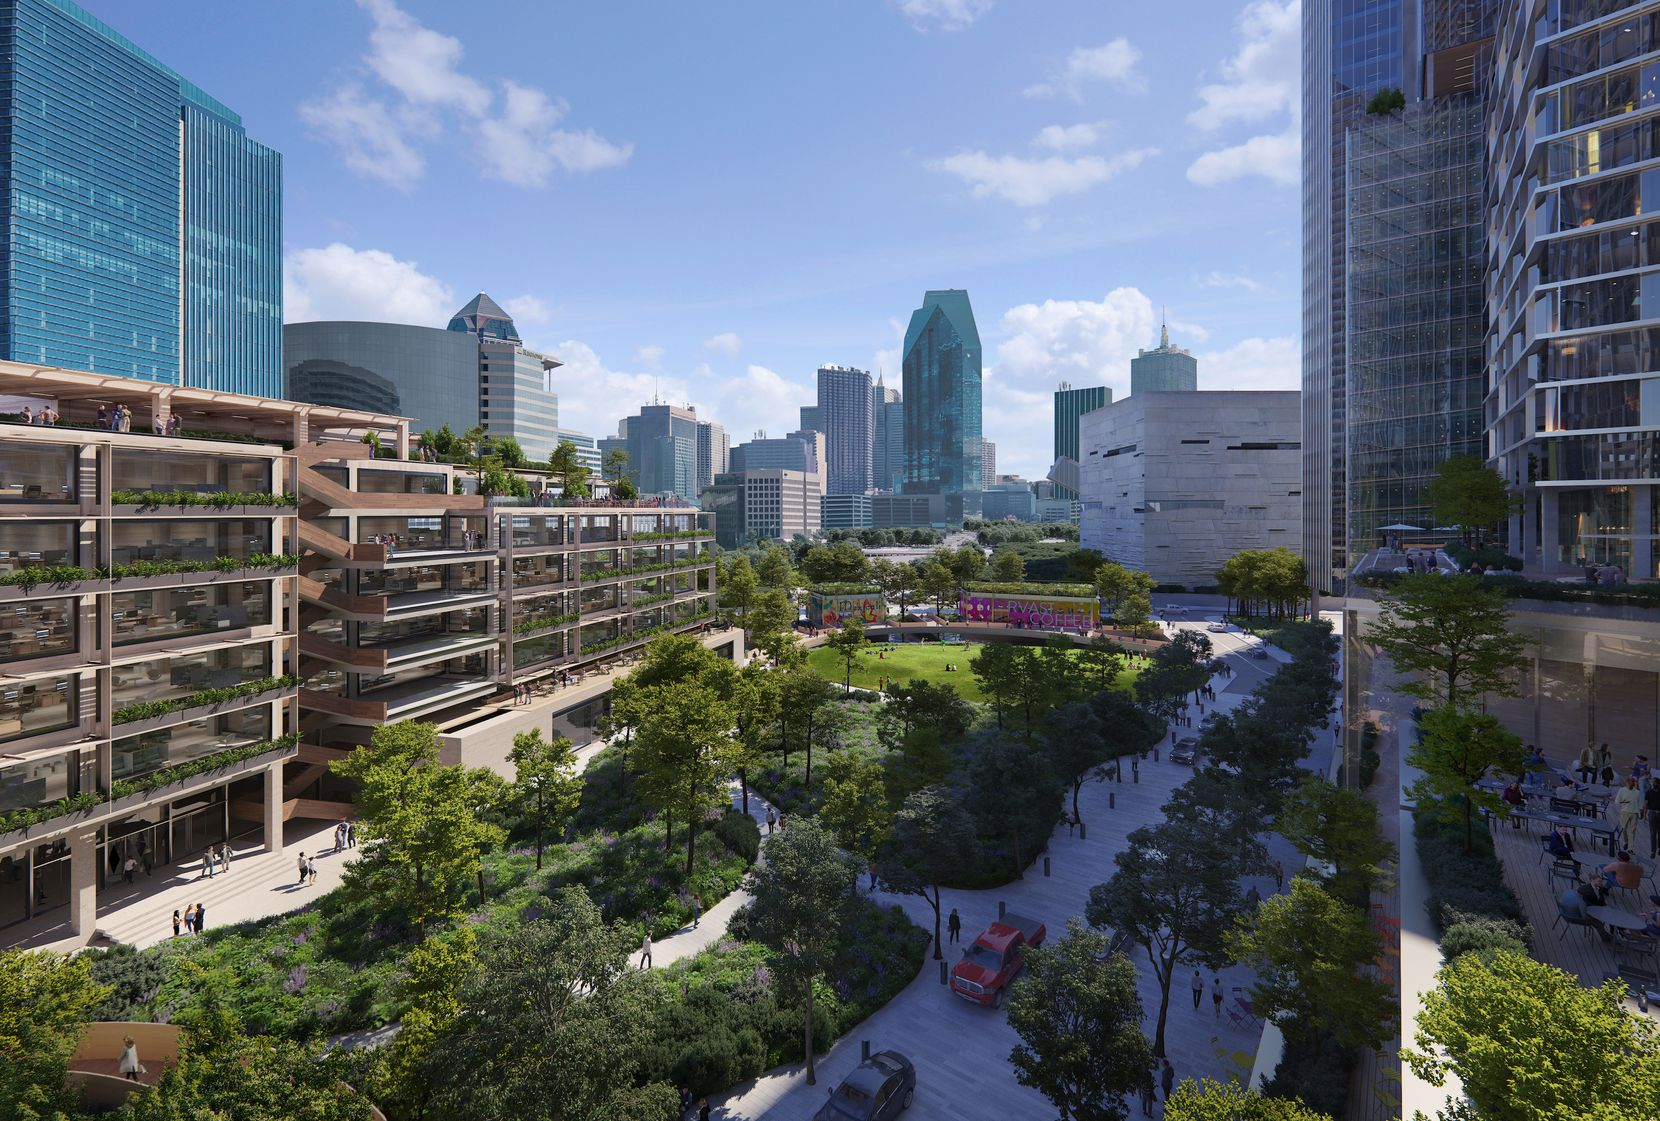 A 1.5-acre urban park will be the front door of the new development facing downtown Dallas.